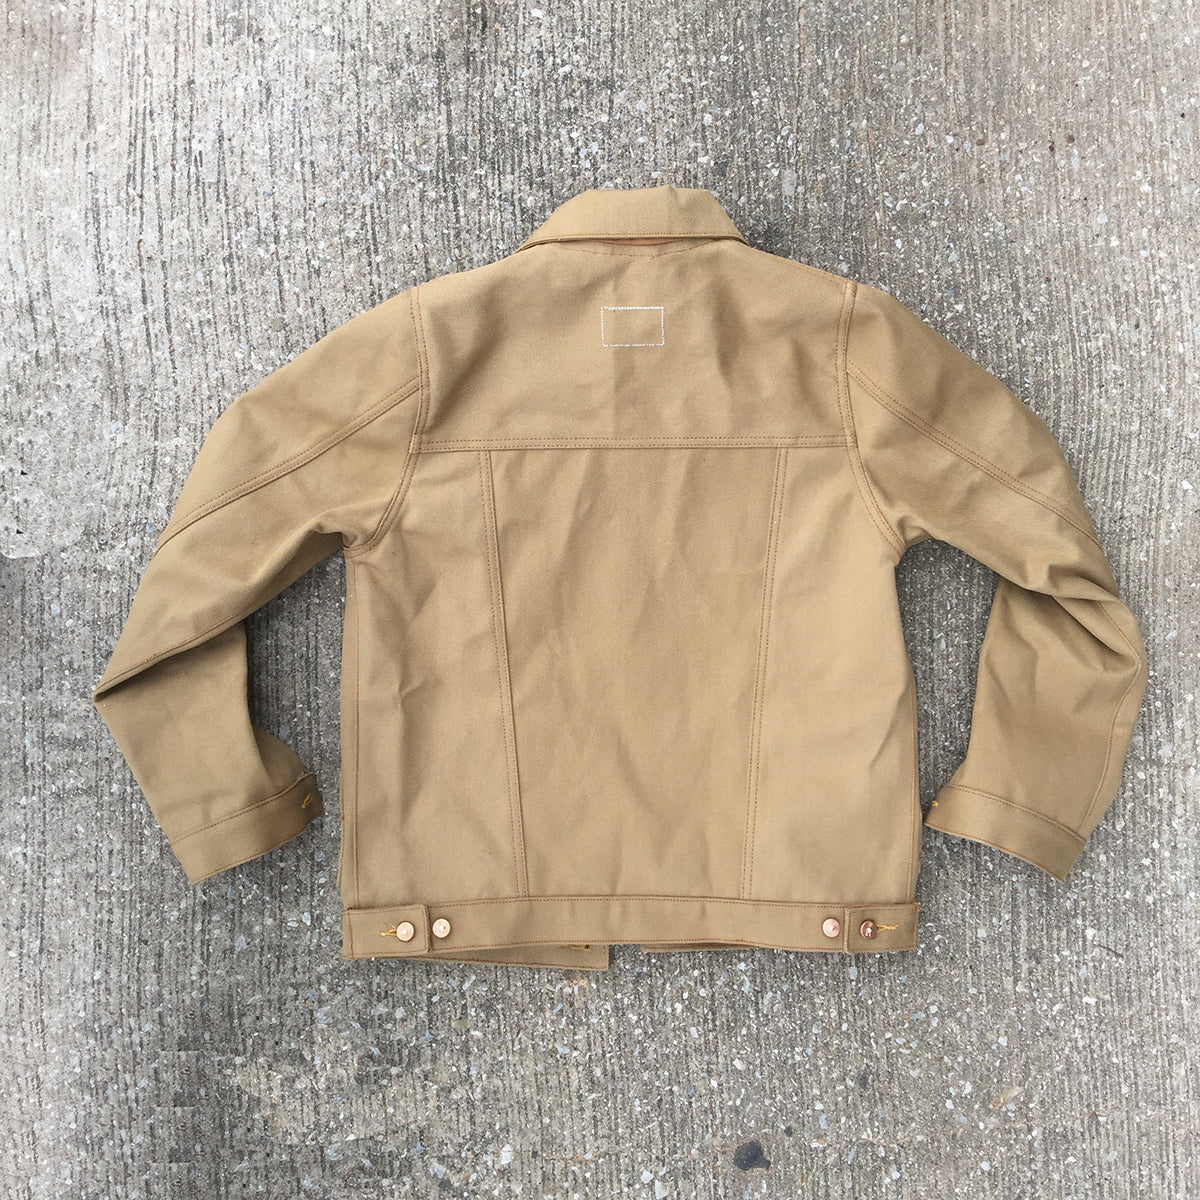 30oz Scottish Bull Denim Field hand Jacket